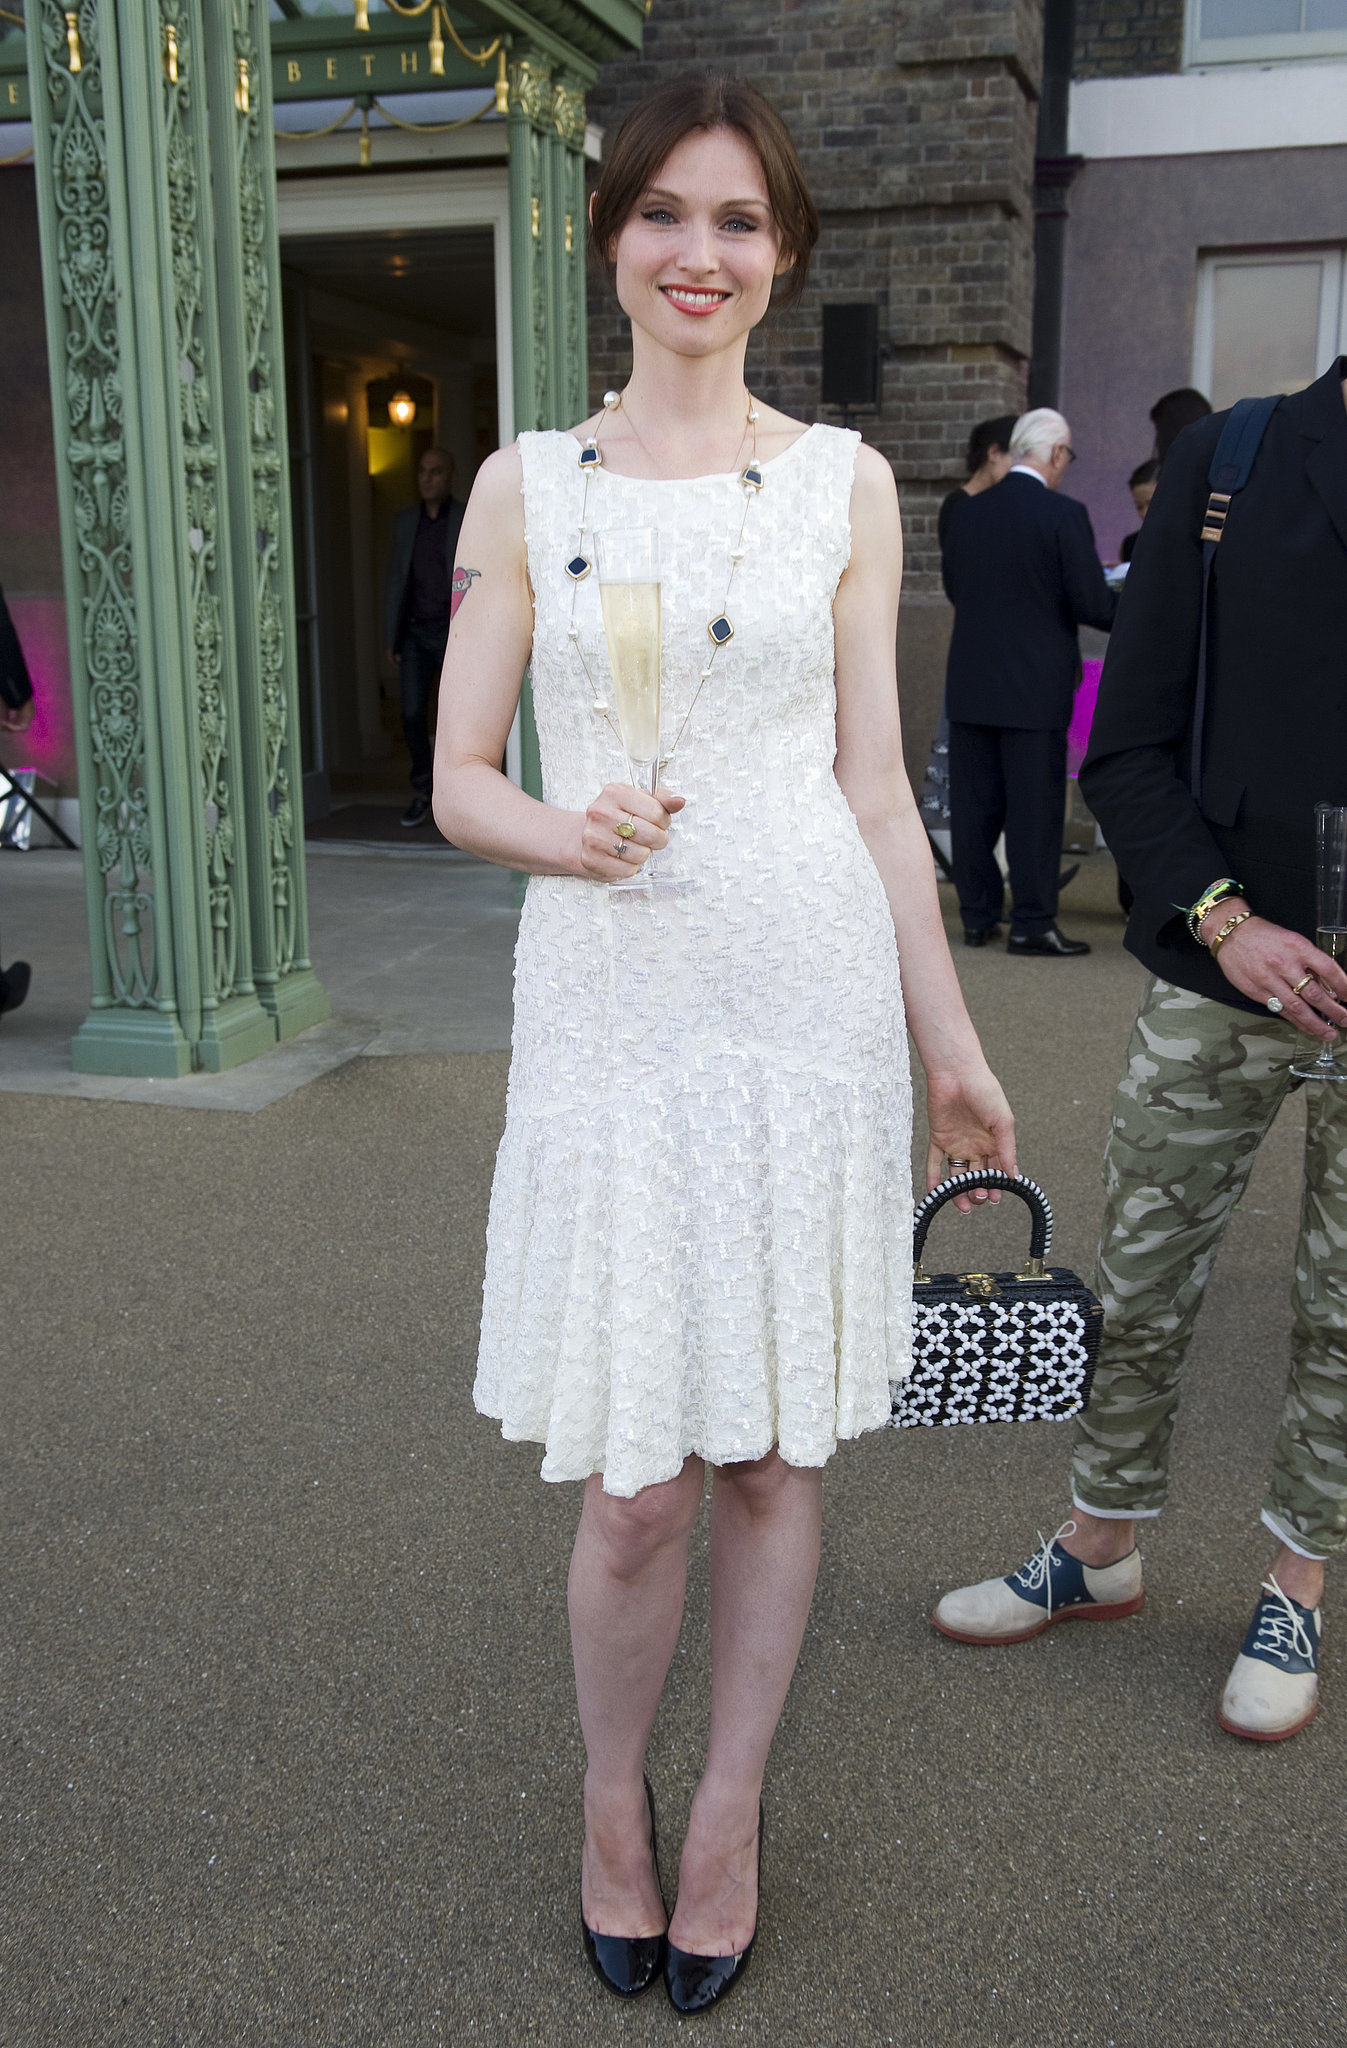 Sophie Ellis-Bextor raised a glass to the Fashion Rules exhibition at the London launch.